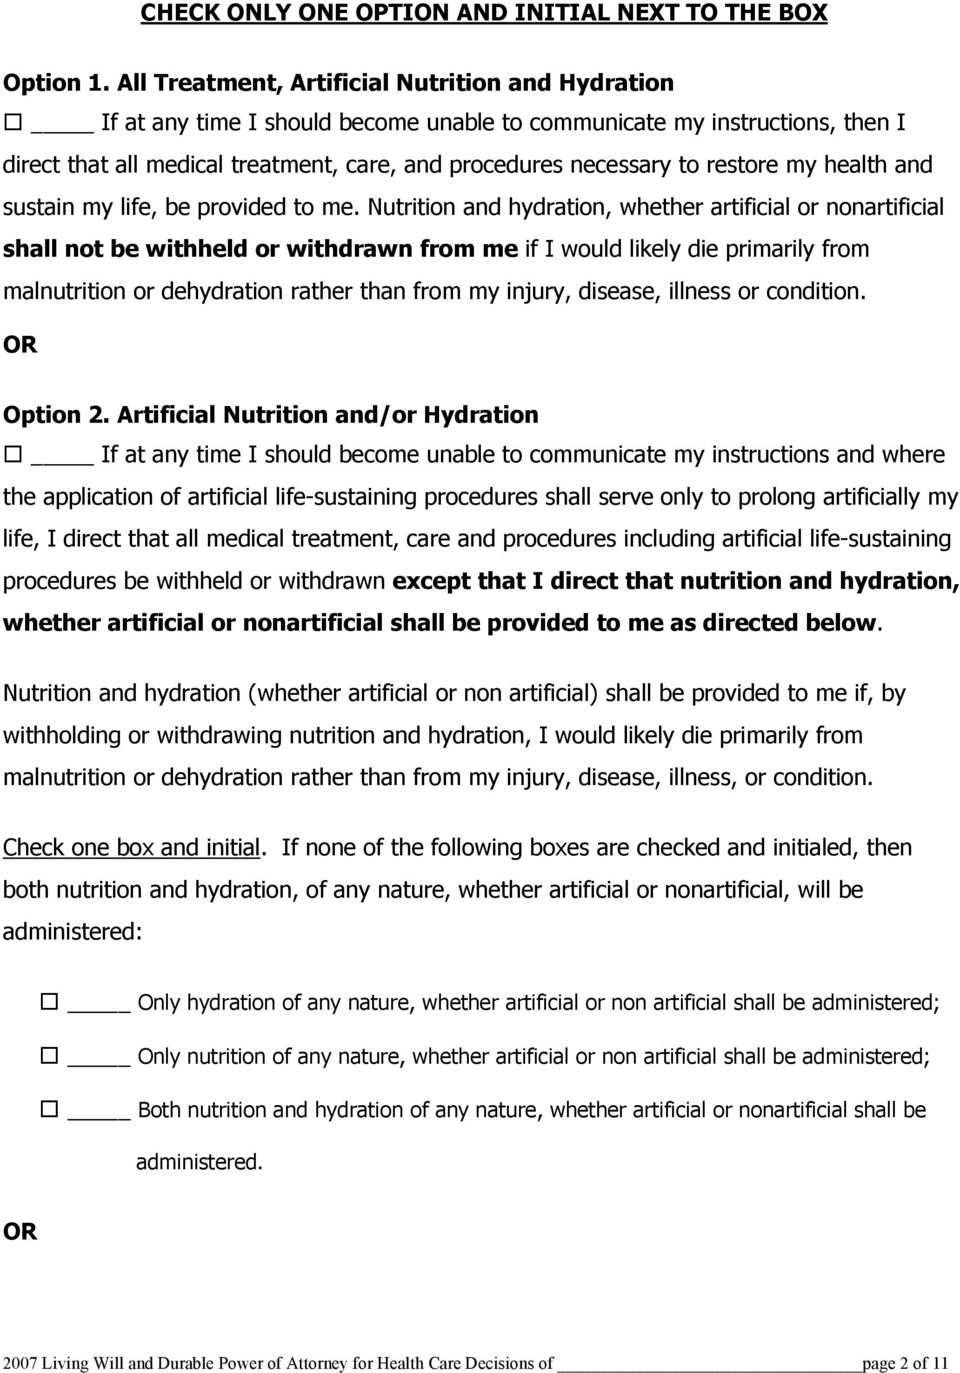 me. Nutrition and hydration, whether artificial or nonartificial shall not be withheld or withdrawn from me if I would likely die primarily from malnutrition or dehydration rather than from my